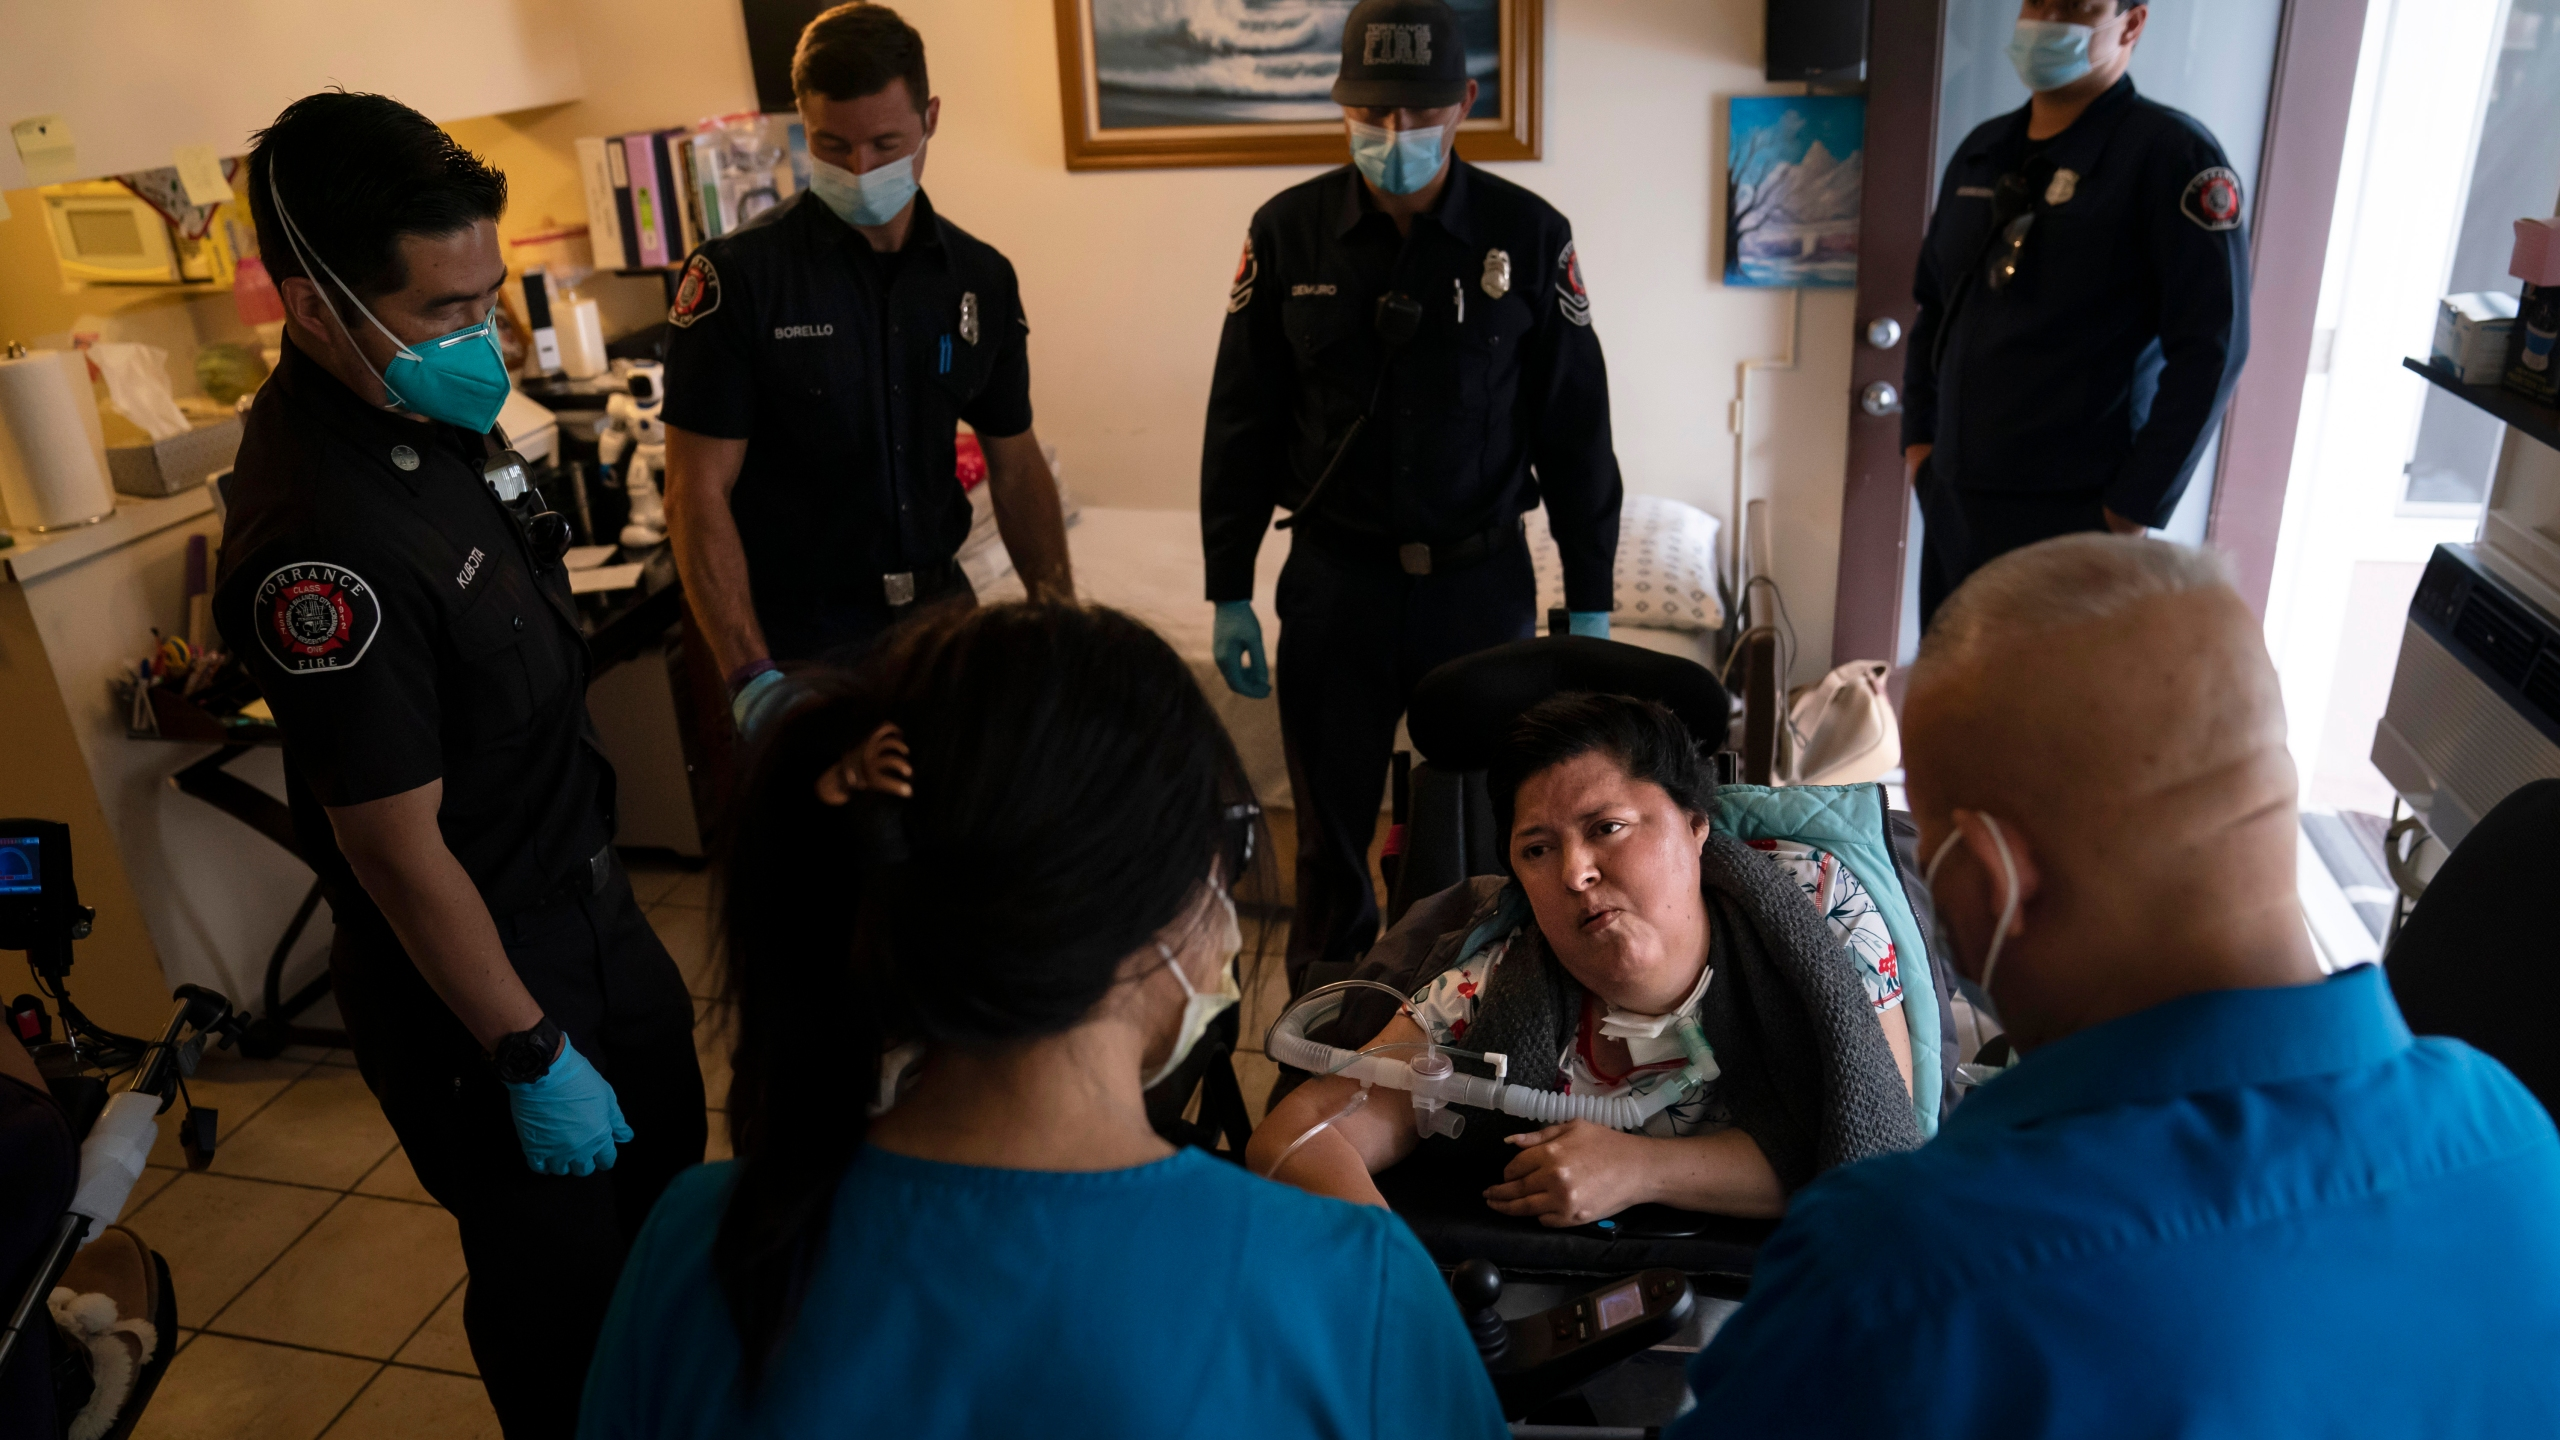 Socorro Franco-Martinez, seated, who suffers from muscular dystrophy, is surrounded by Torrance firefighters as she talks with pharmacist Stella Kim, foreground left, after getting her second dose of the Pfizer COVID-19 vaccine in her apartment, Wednesday, May 12, 2021, in Torrance, Calif. Teamed up with the Torrance Fire Department, Torrance Memorial Medical Center started inoculating people at home in March, identifying people through a city hotline, county health department, senior centers and doctor's offices, said Mei Tsai, the pharmacist who coordinates the program. (AP Photo/Jae C. Hong)